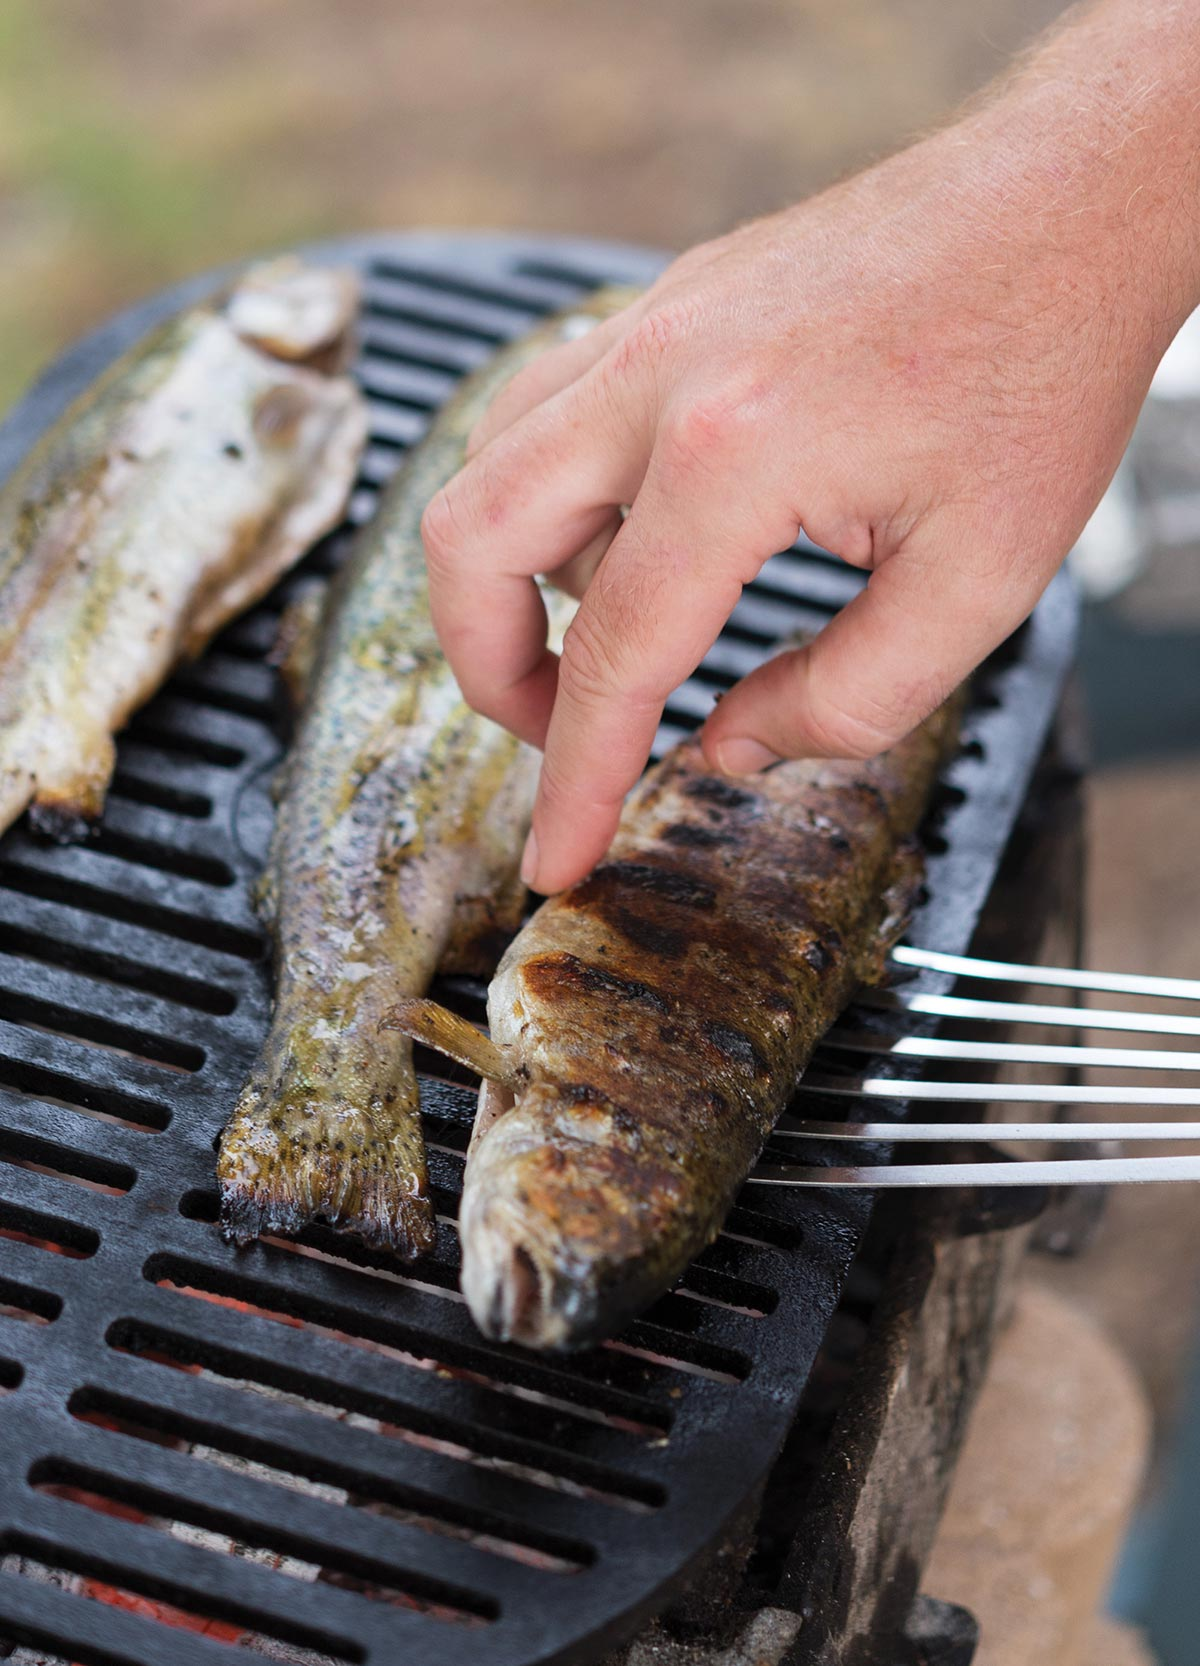 Flipping a grilled whole fish